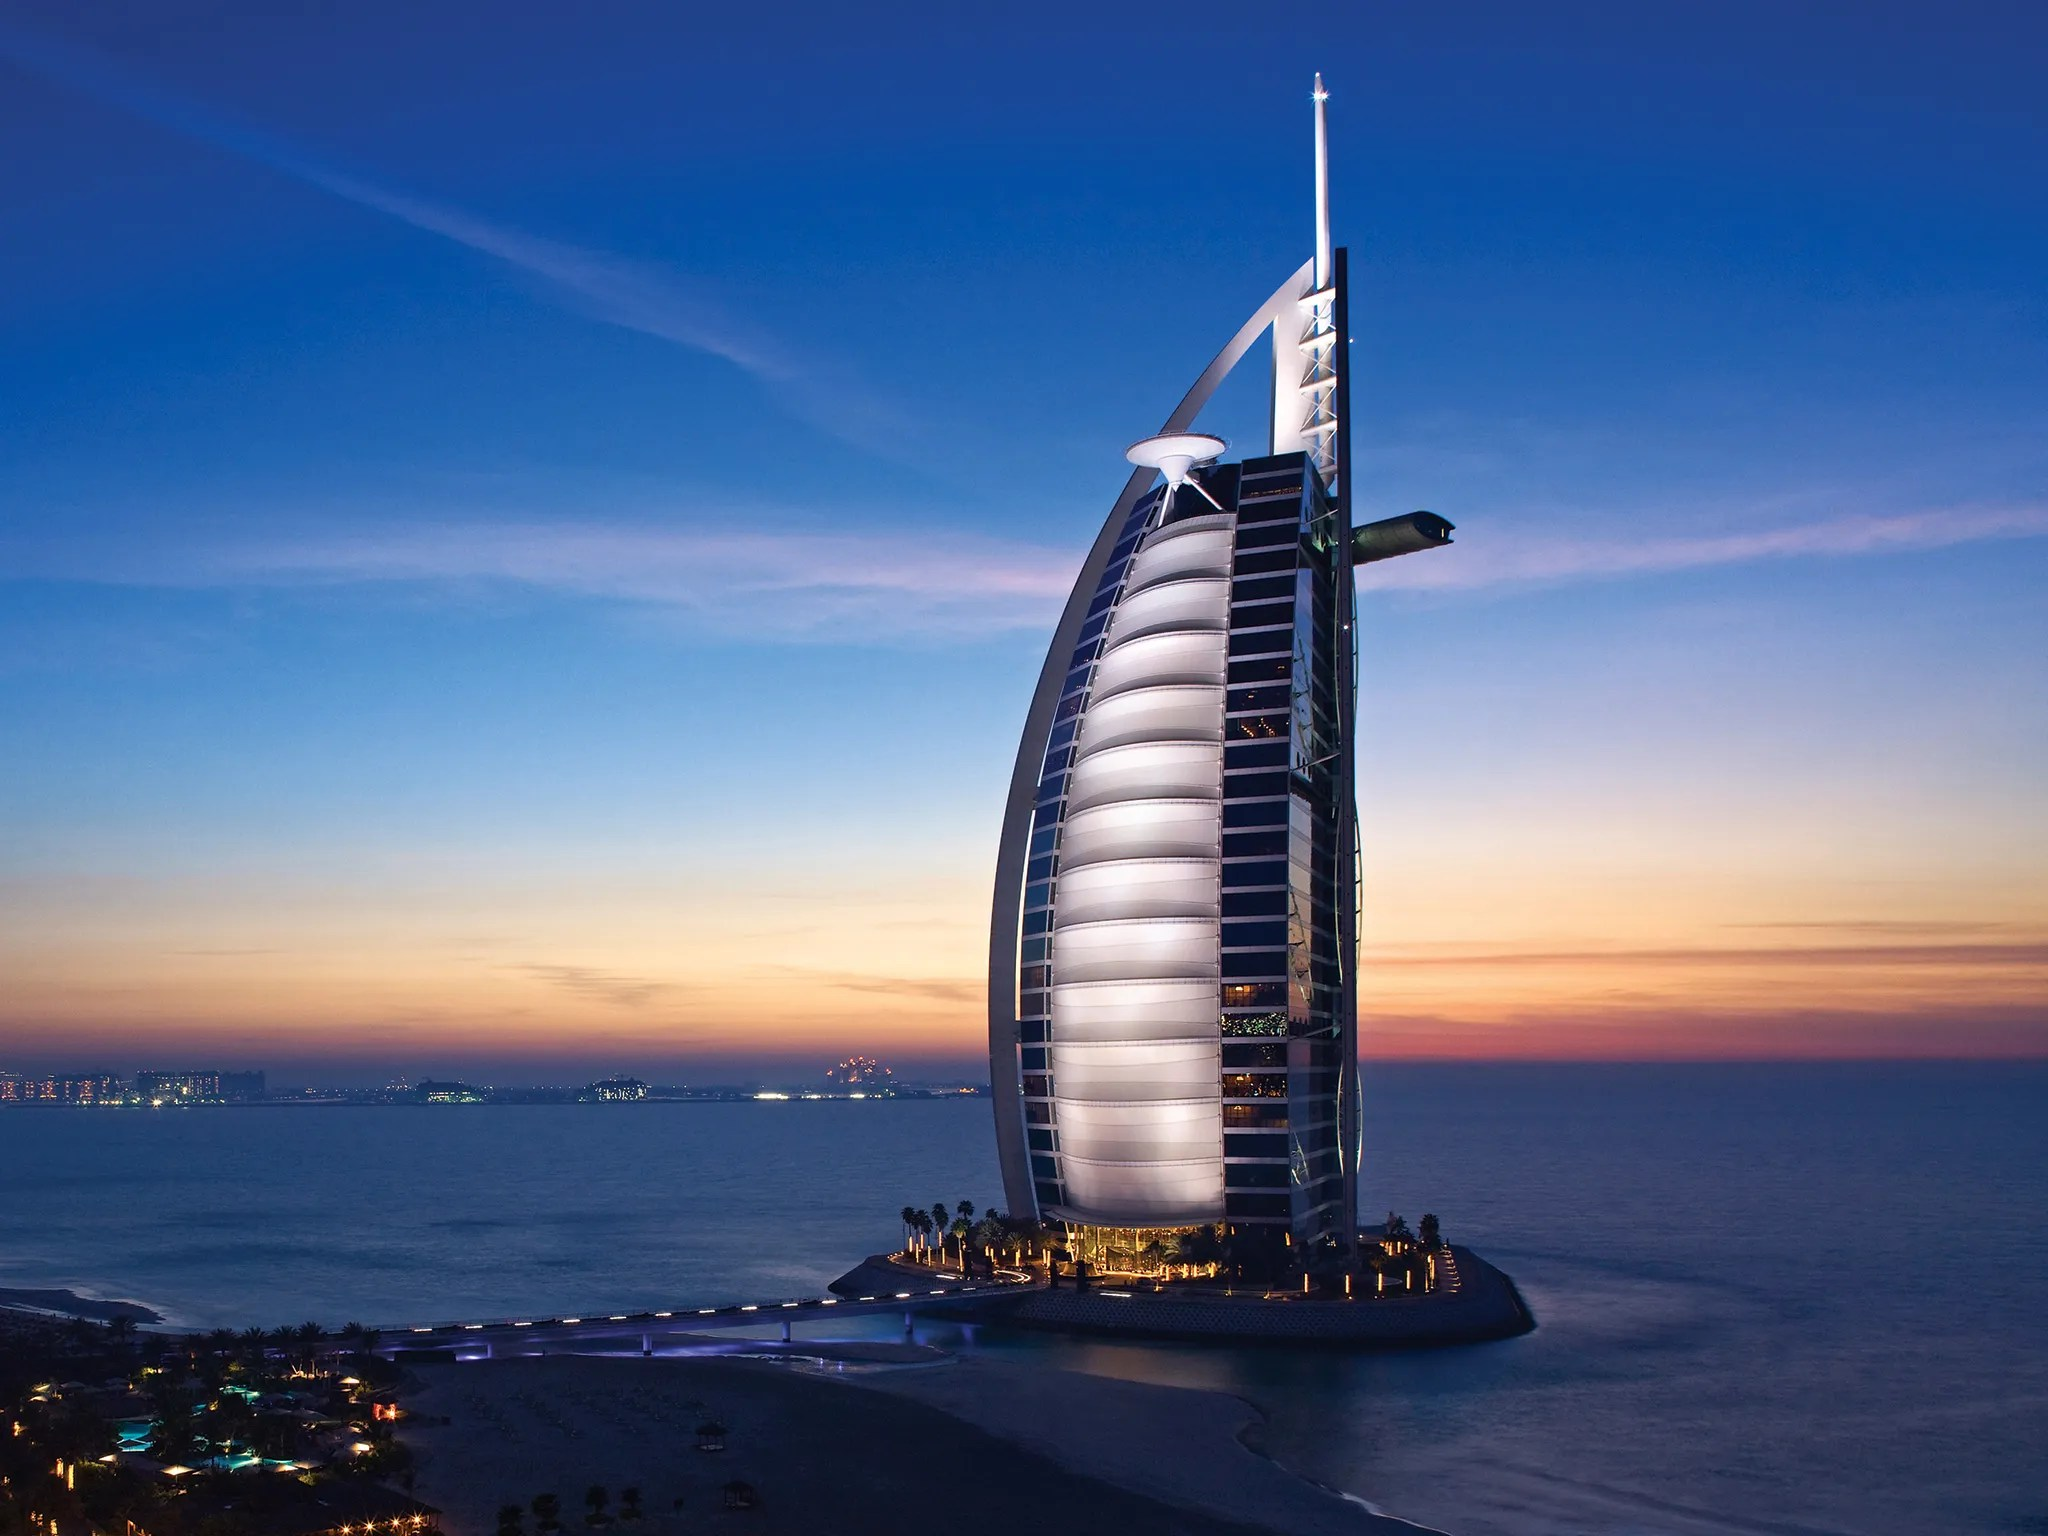 Dubais Extravagent Burj AlArab Hotel is Now Accessible